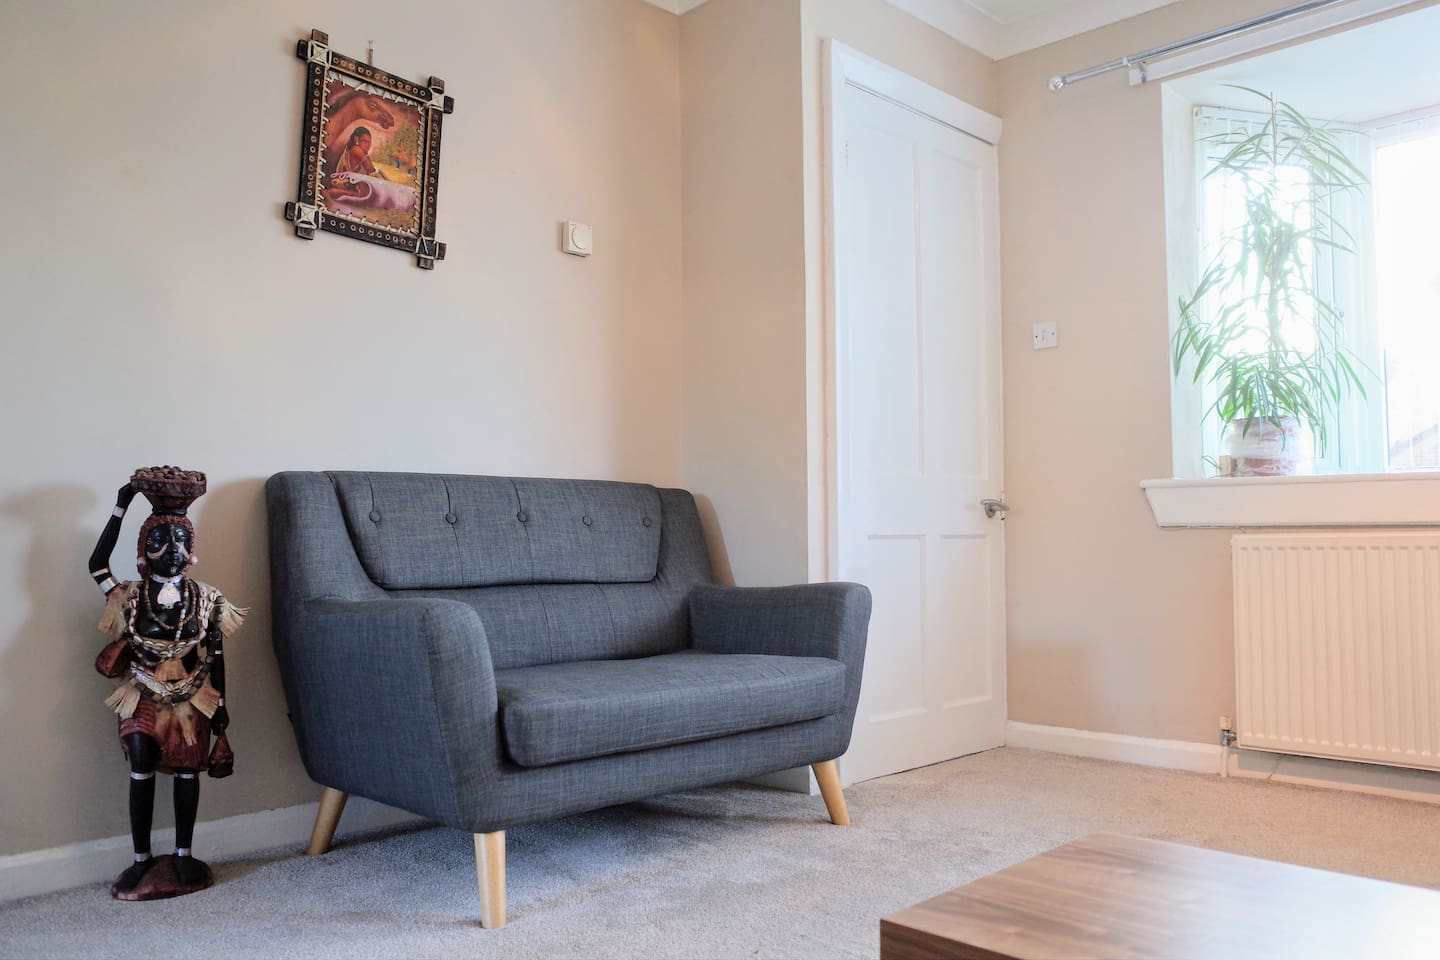 Living room. Guests are very welcome to use this shared space